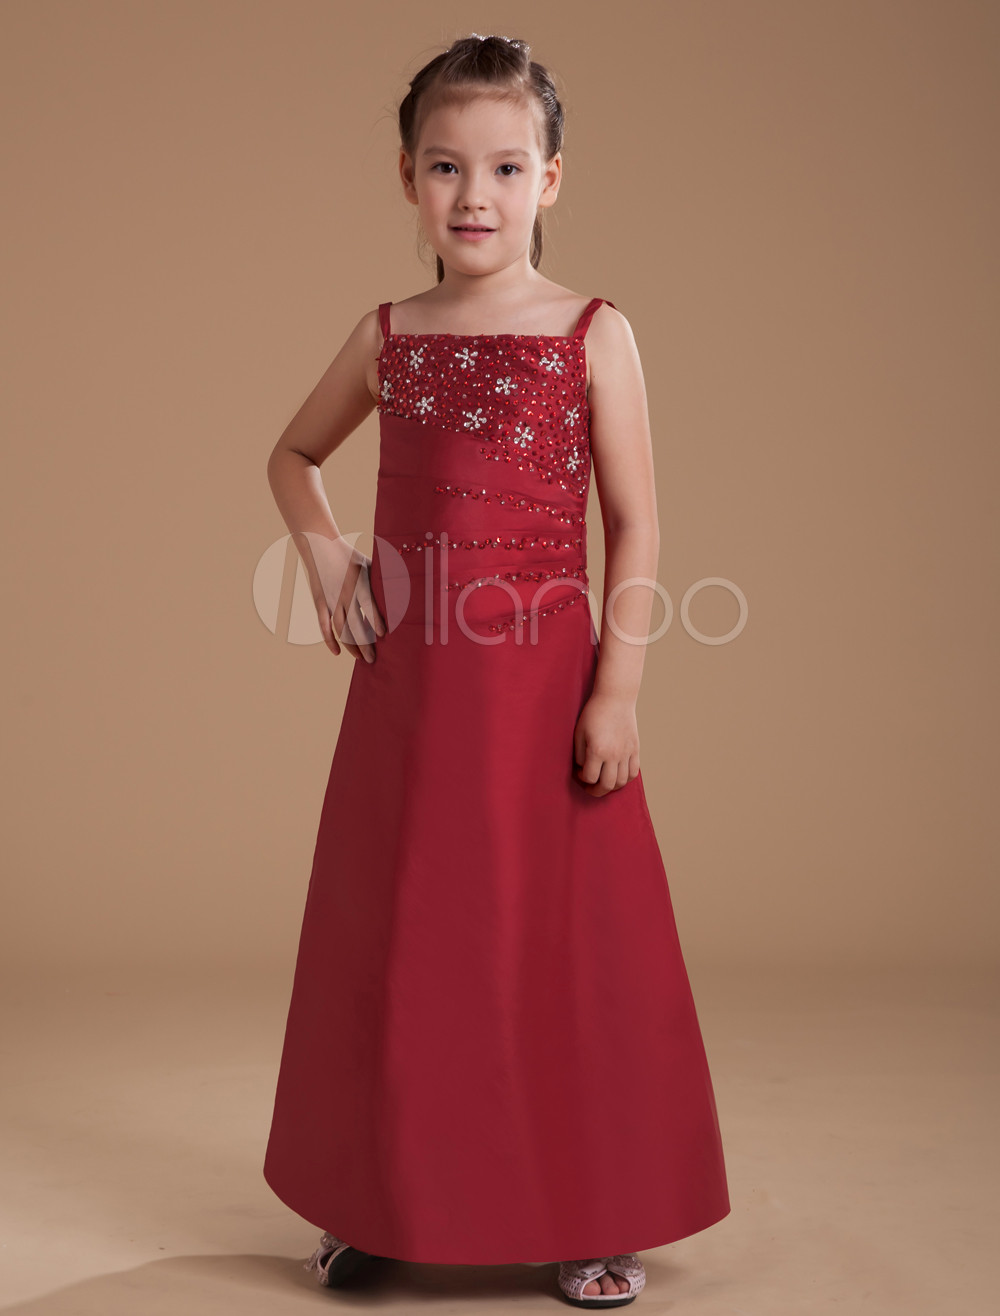 Gorgeous Wine Red Taffeta Thin Shoulder Straps Floor Length Junior Bridesmaid Dress